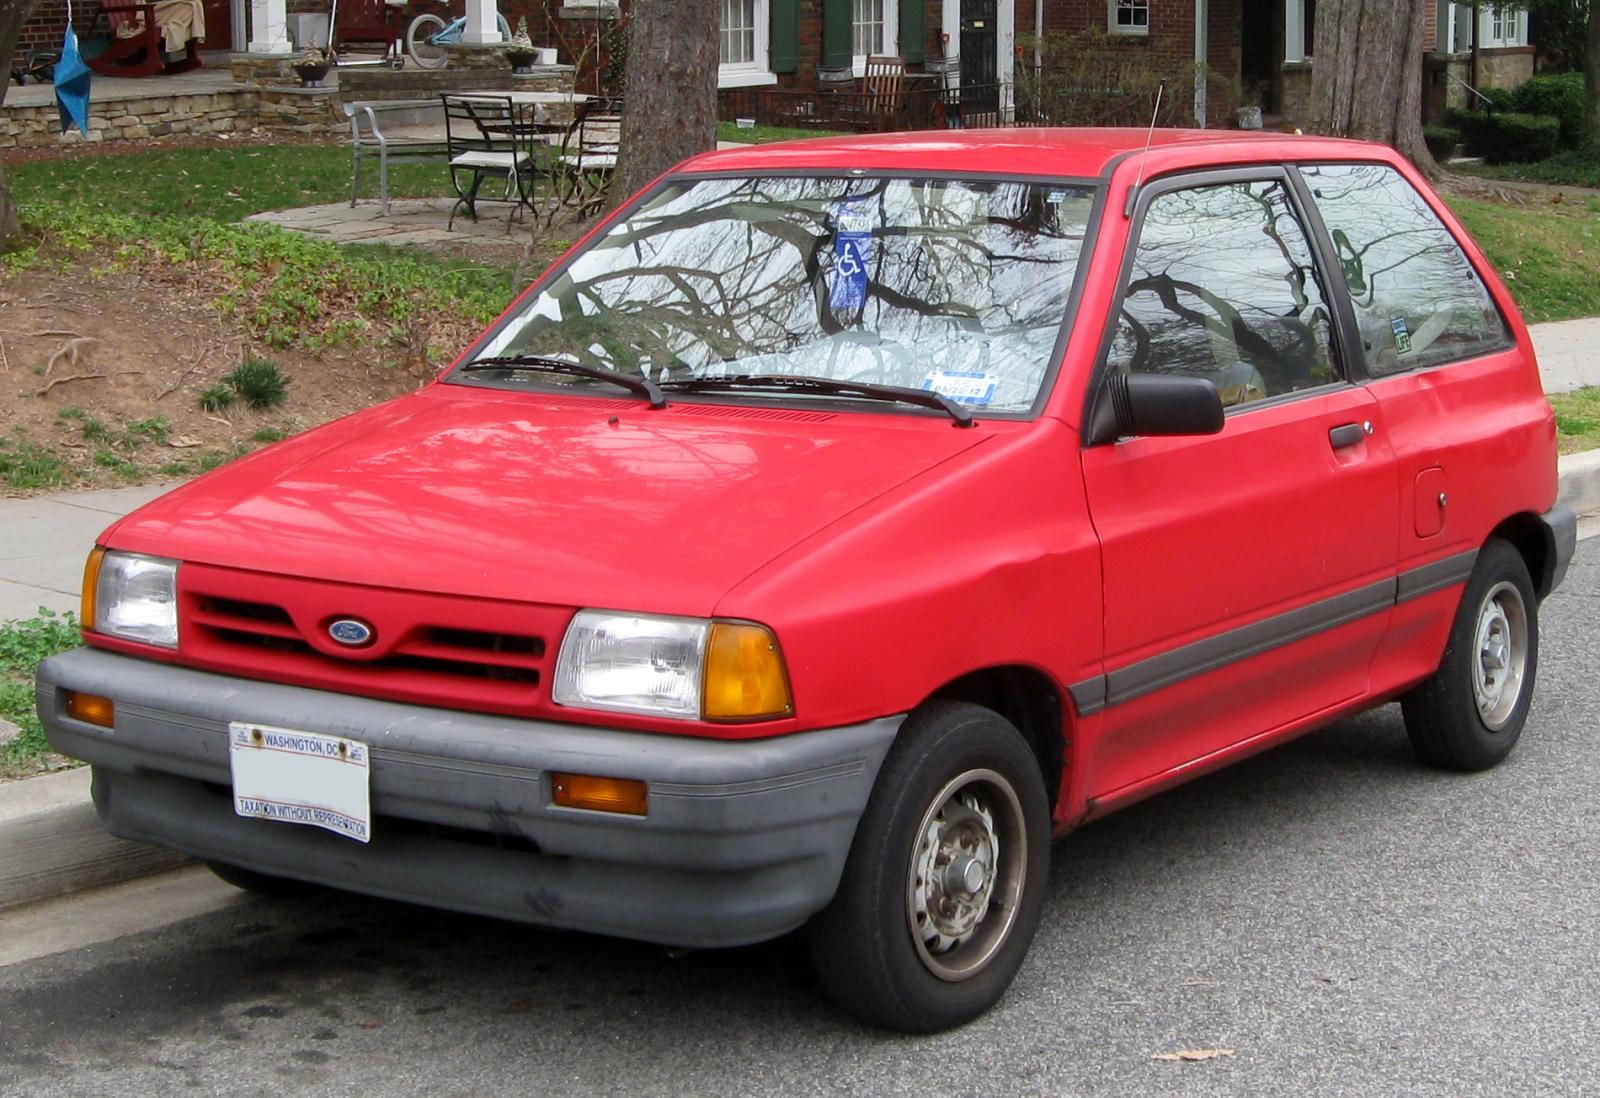 1990 Ford Festiva Information And Photos Zombiedrive